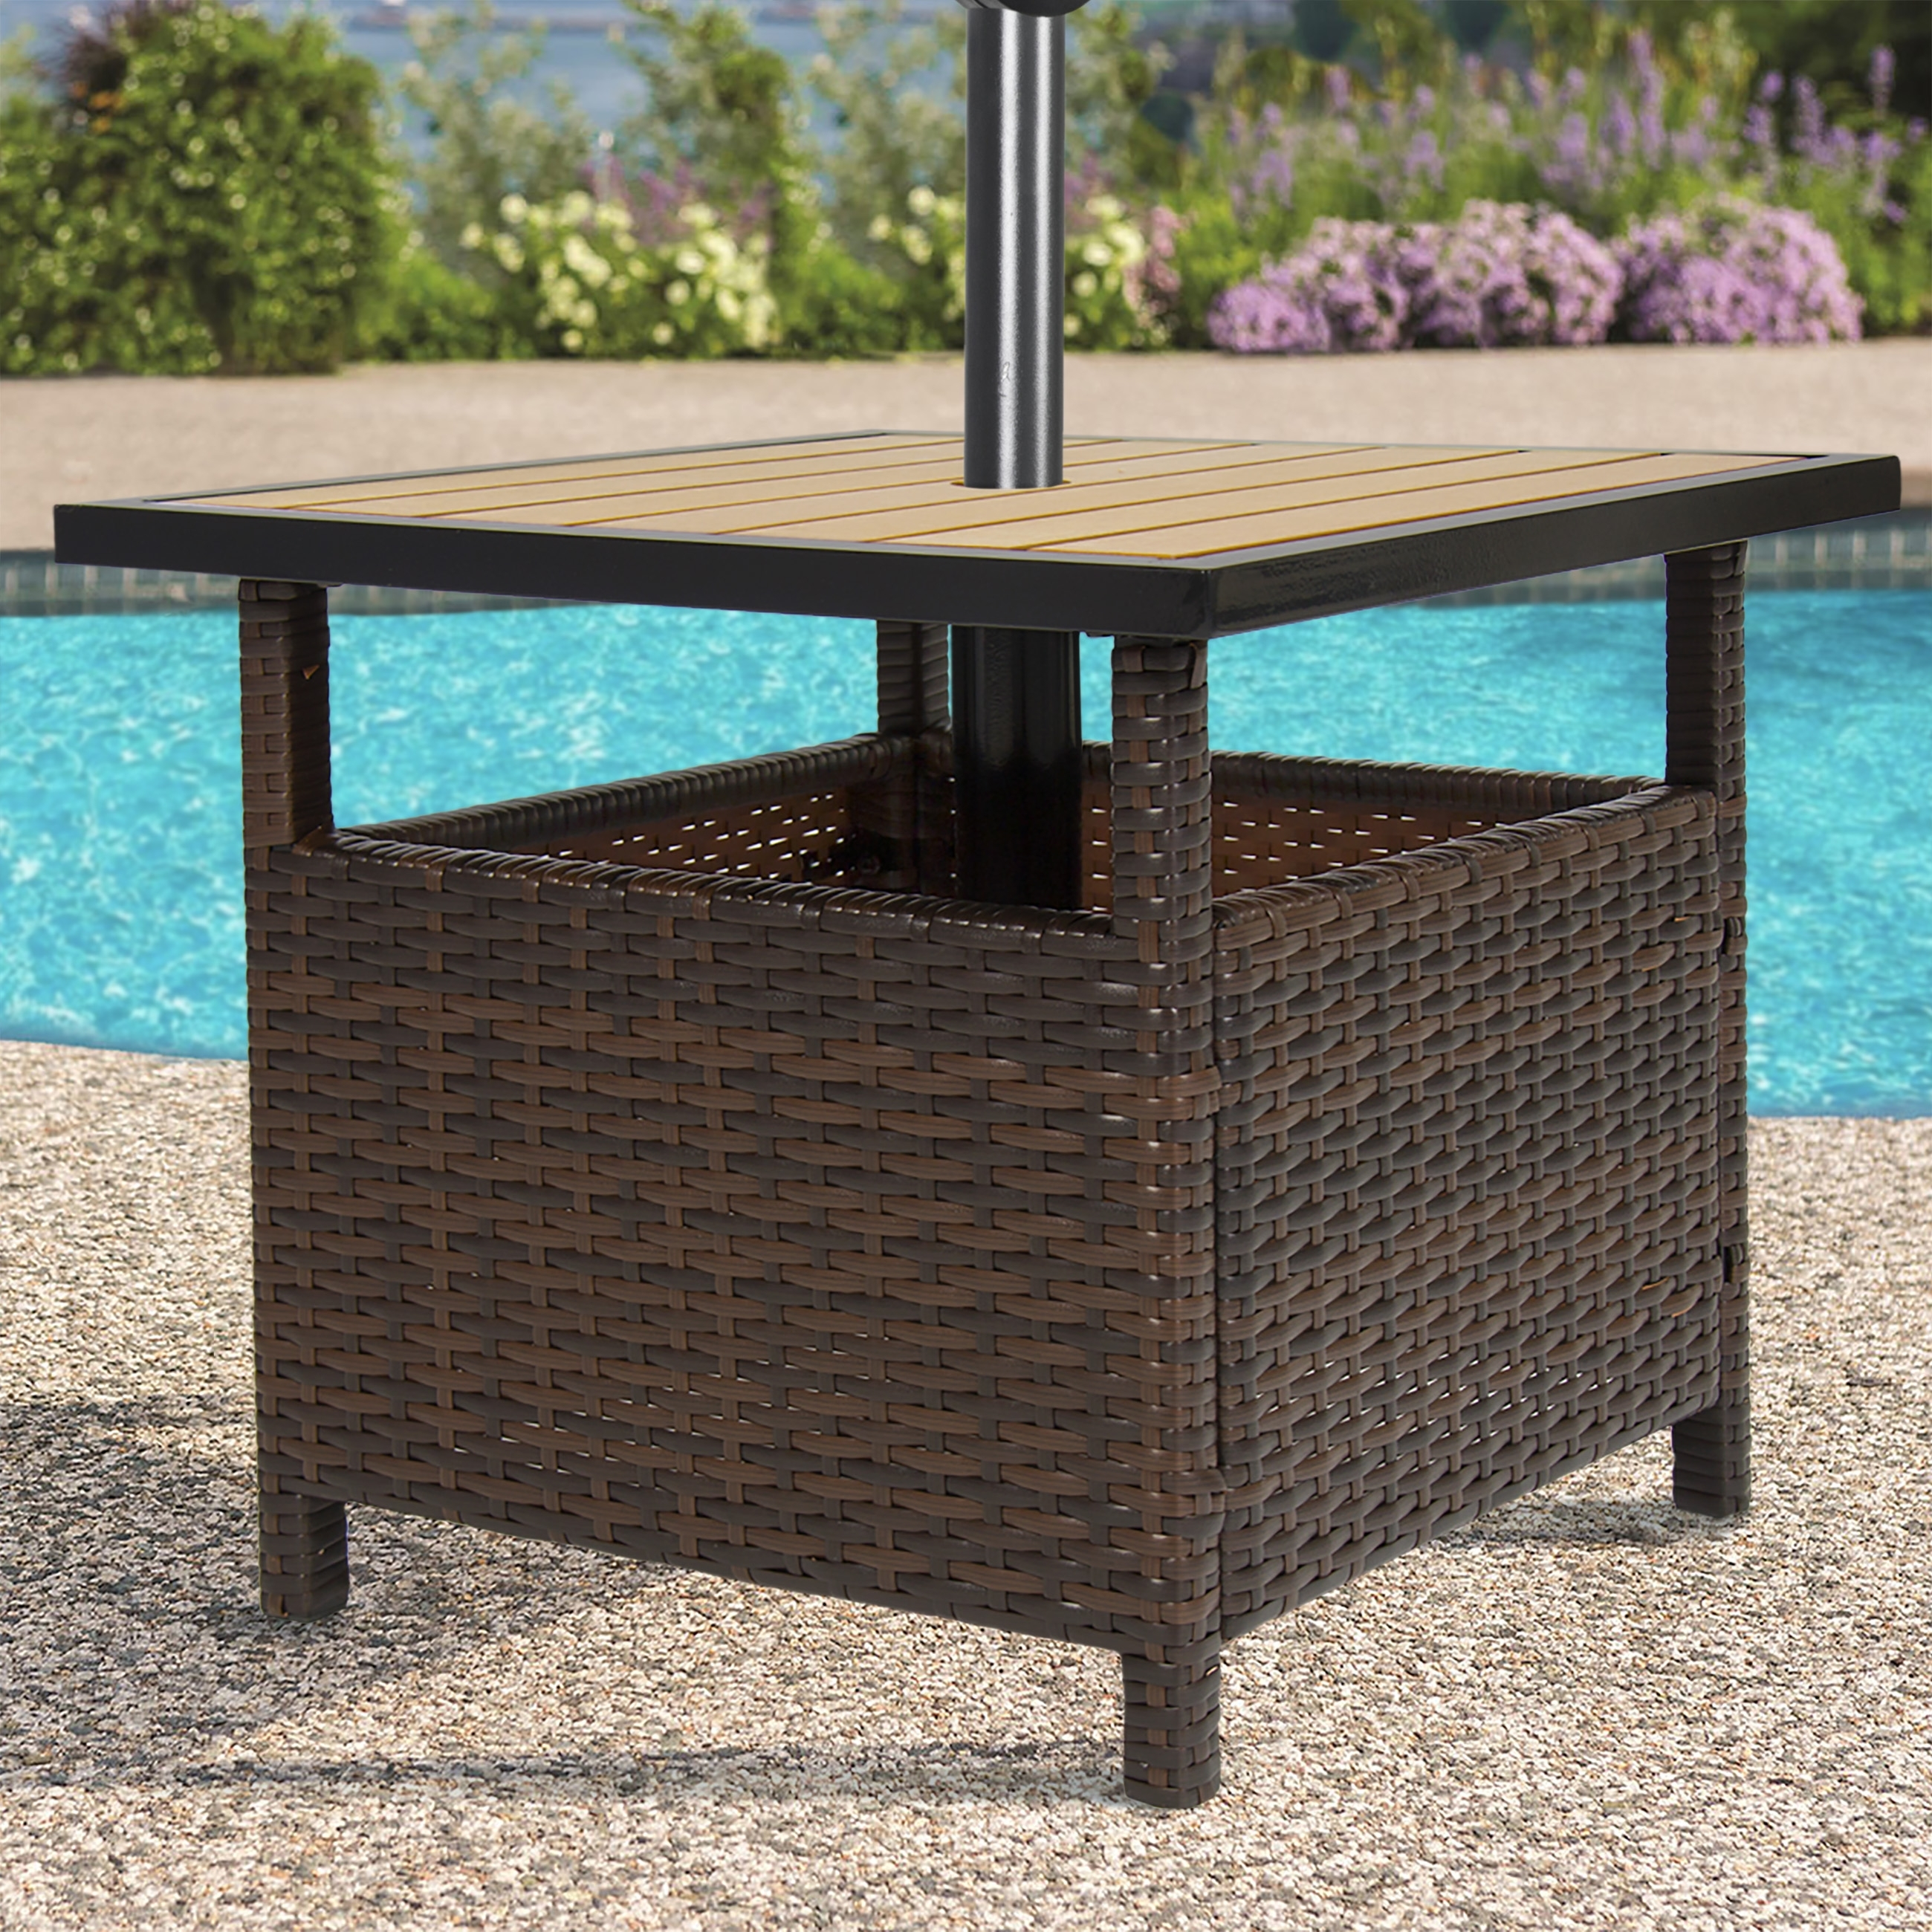 Most Current Patio Umbrella Stand Side Tables With Regard To Best Choice Products Outdoor Furniture Wicker Rattan Patio Umbrella (View 8 of 20)